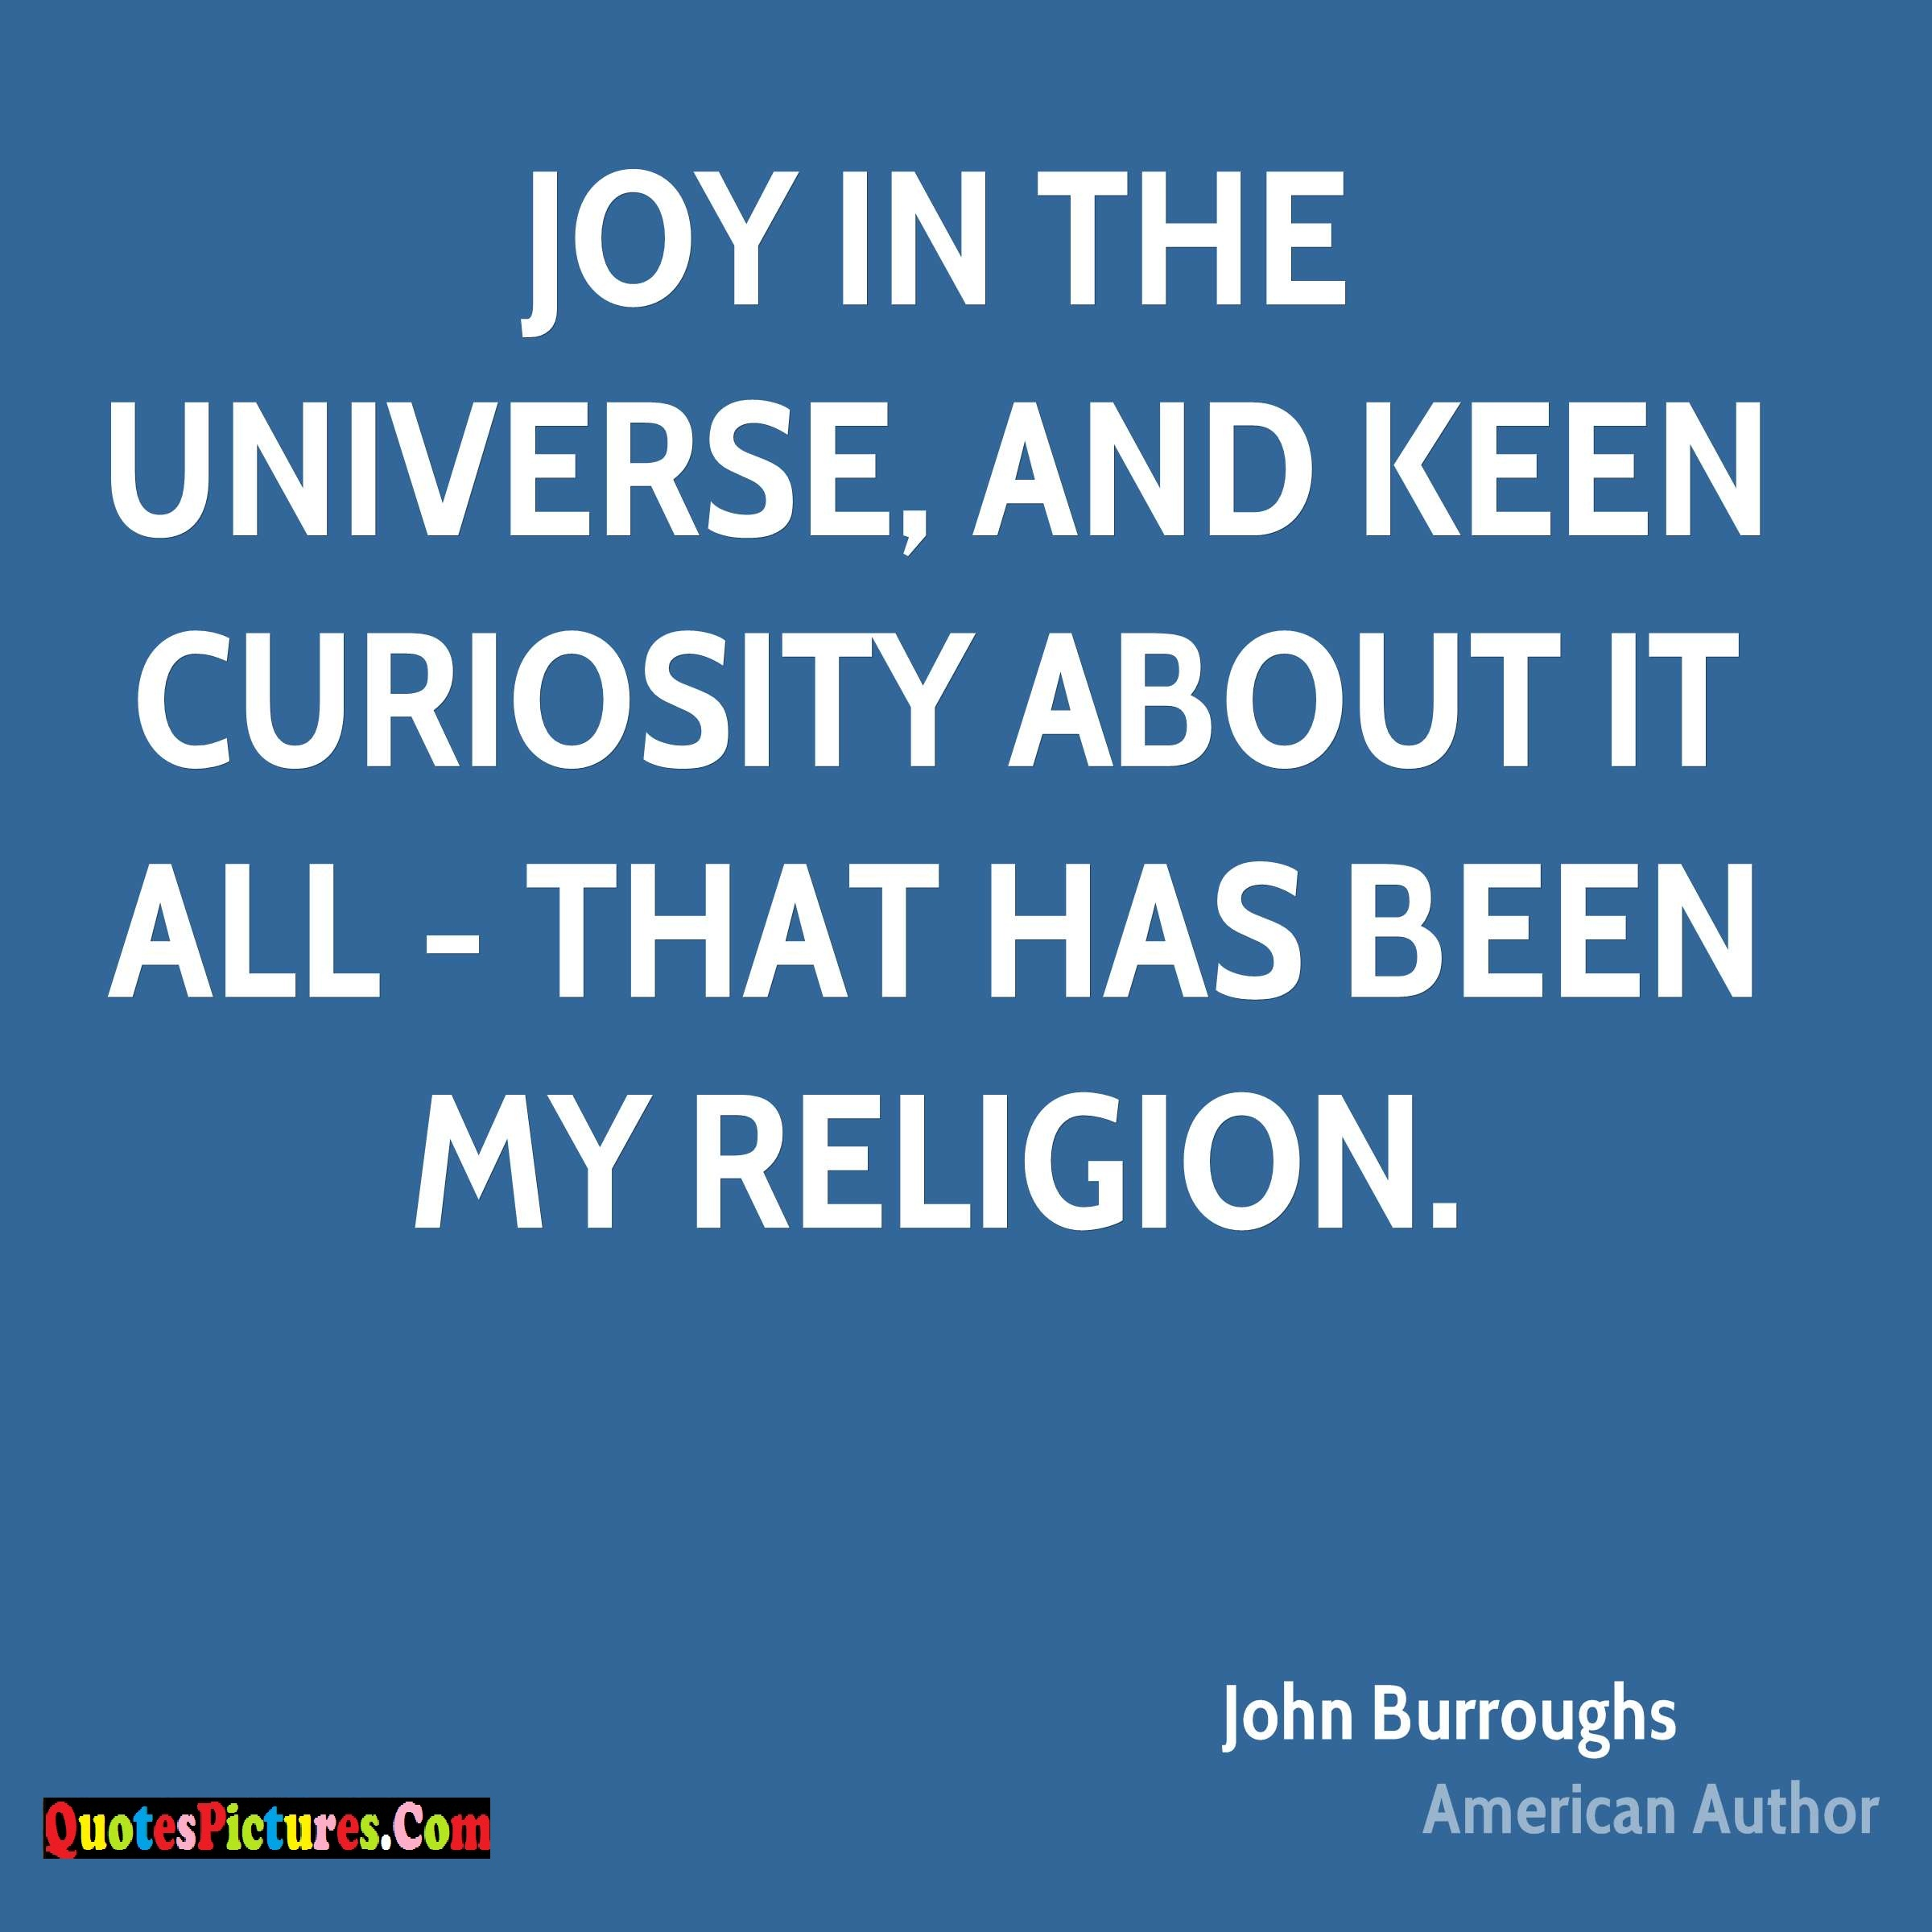 Fabulous Religion Quote - Joy In The Universe, And Keen Curiosity About It All- That Has Been My Religion.